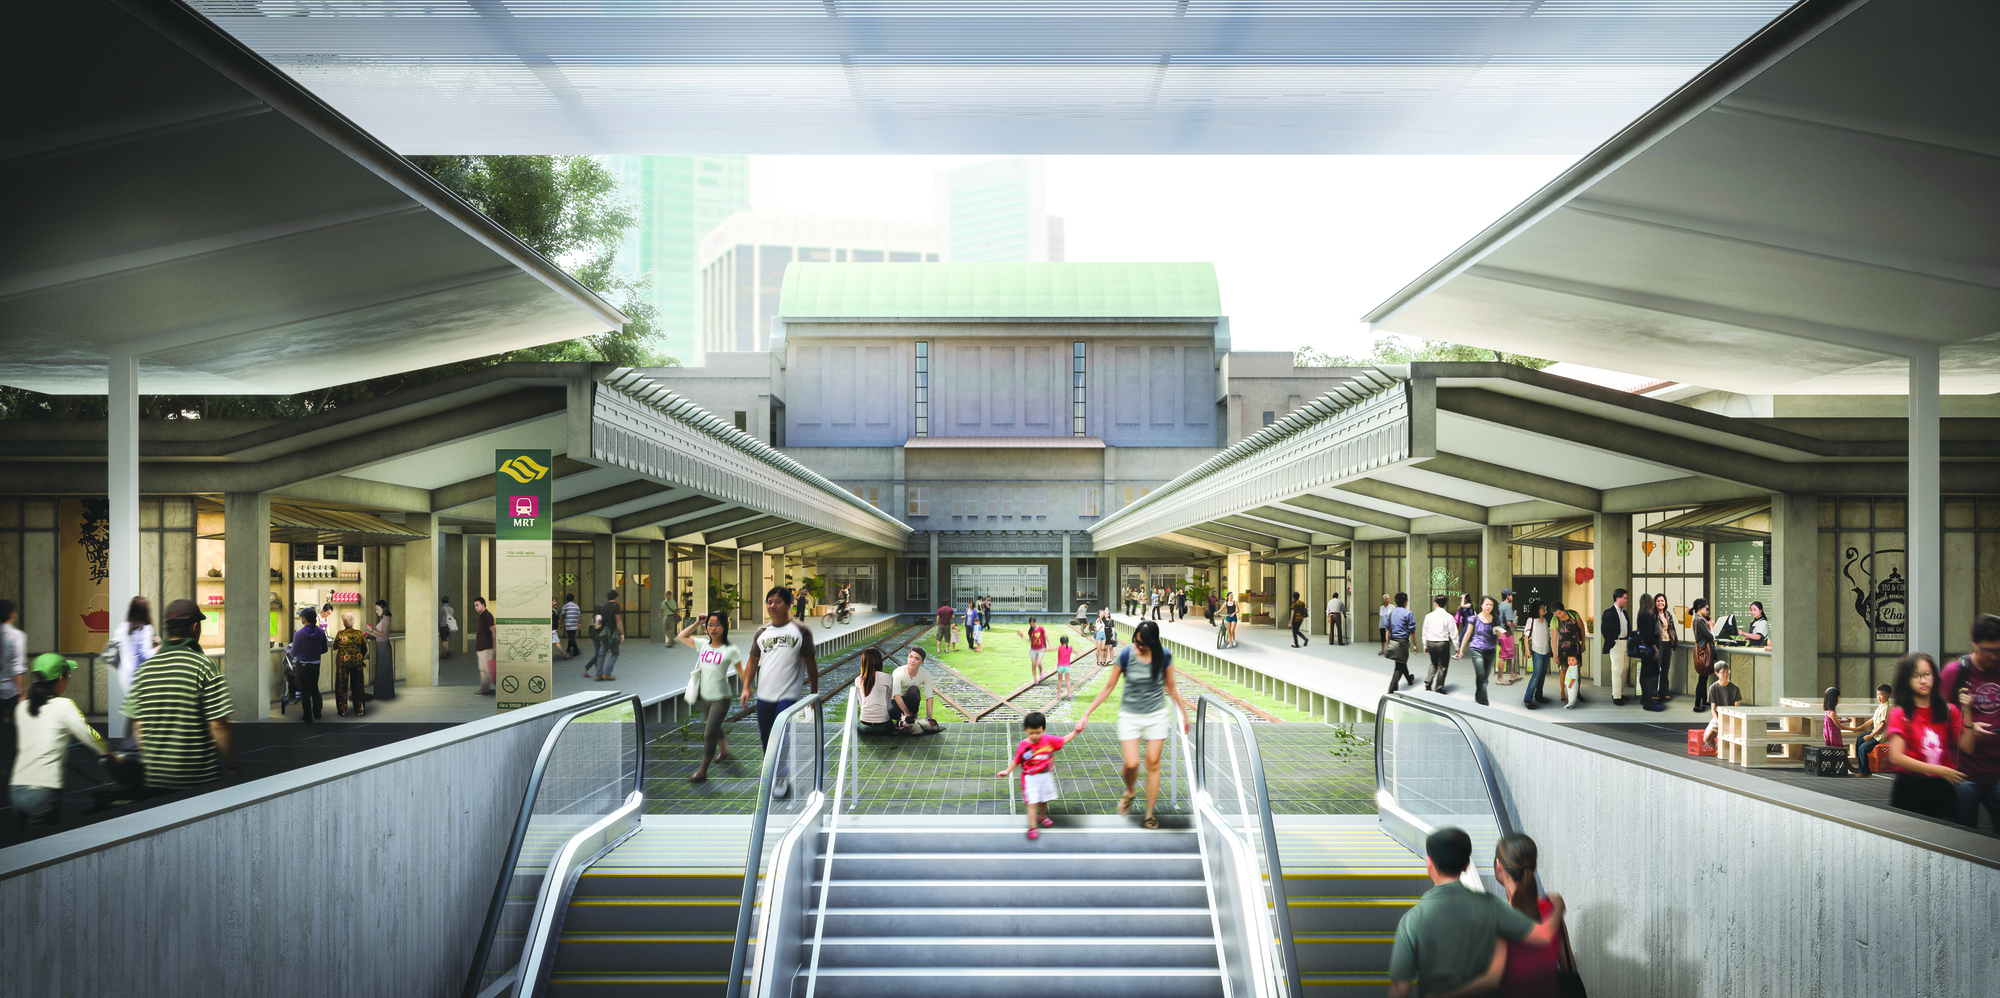 3 Architects Win Presidentu0027s Designer Of The Year Award In Singapore |  ArchDaily